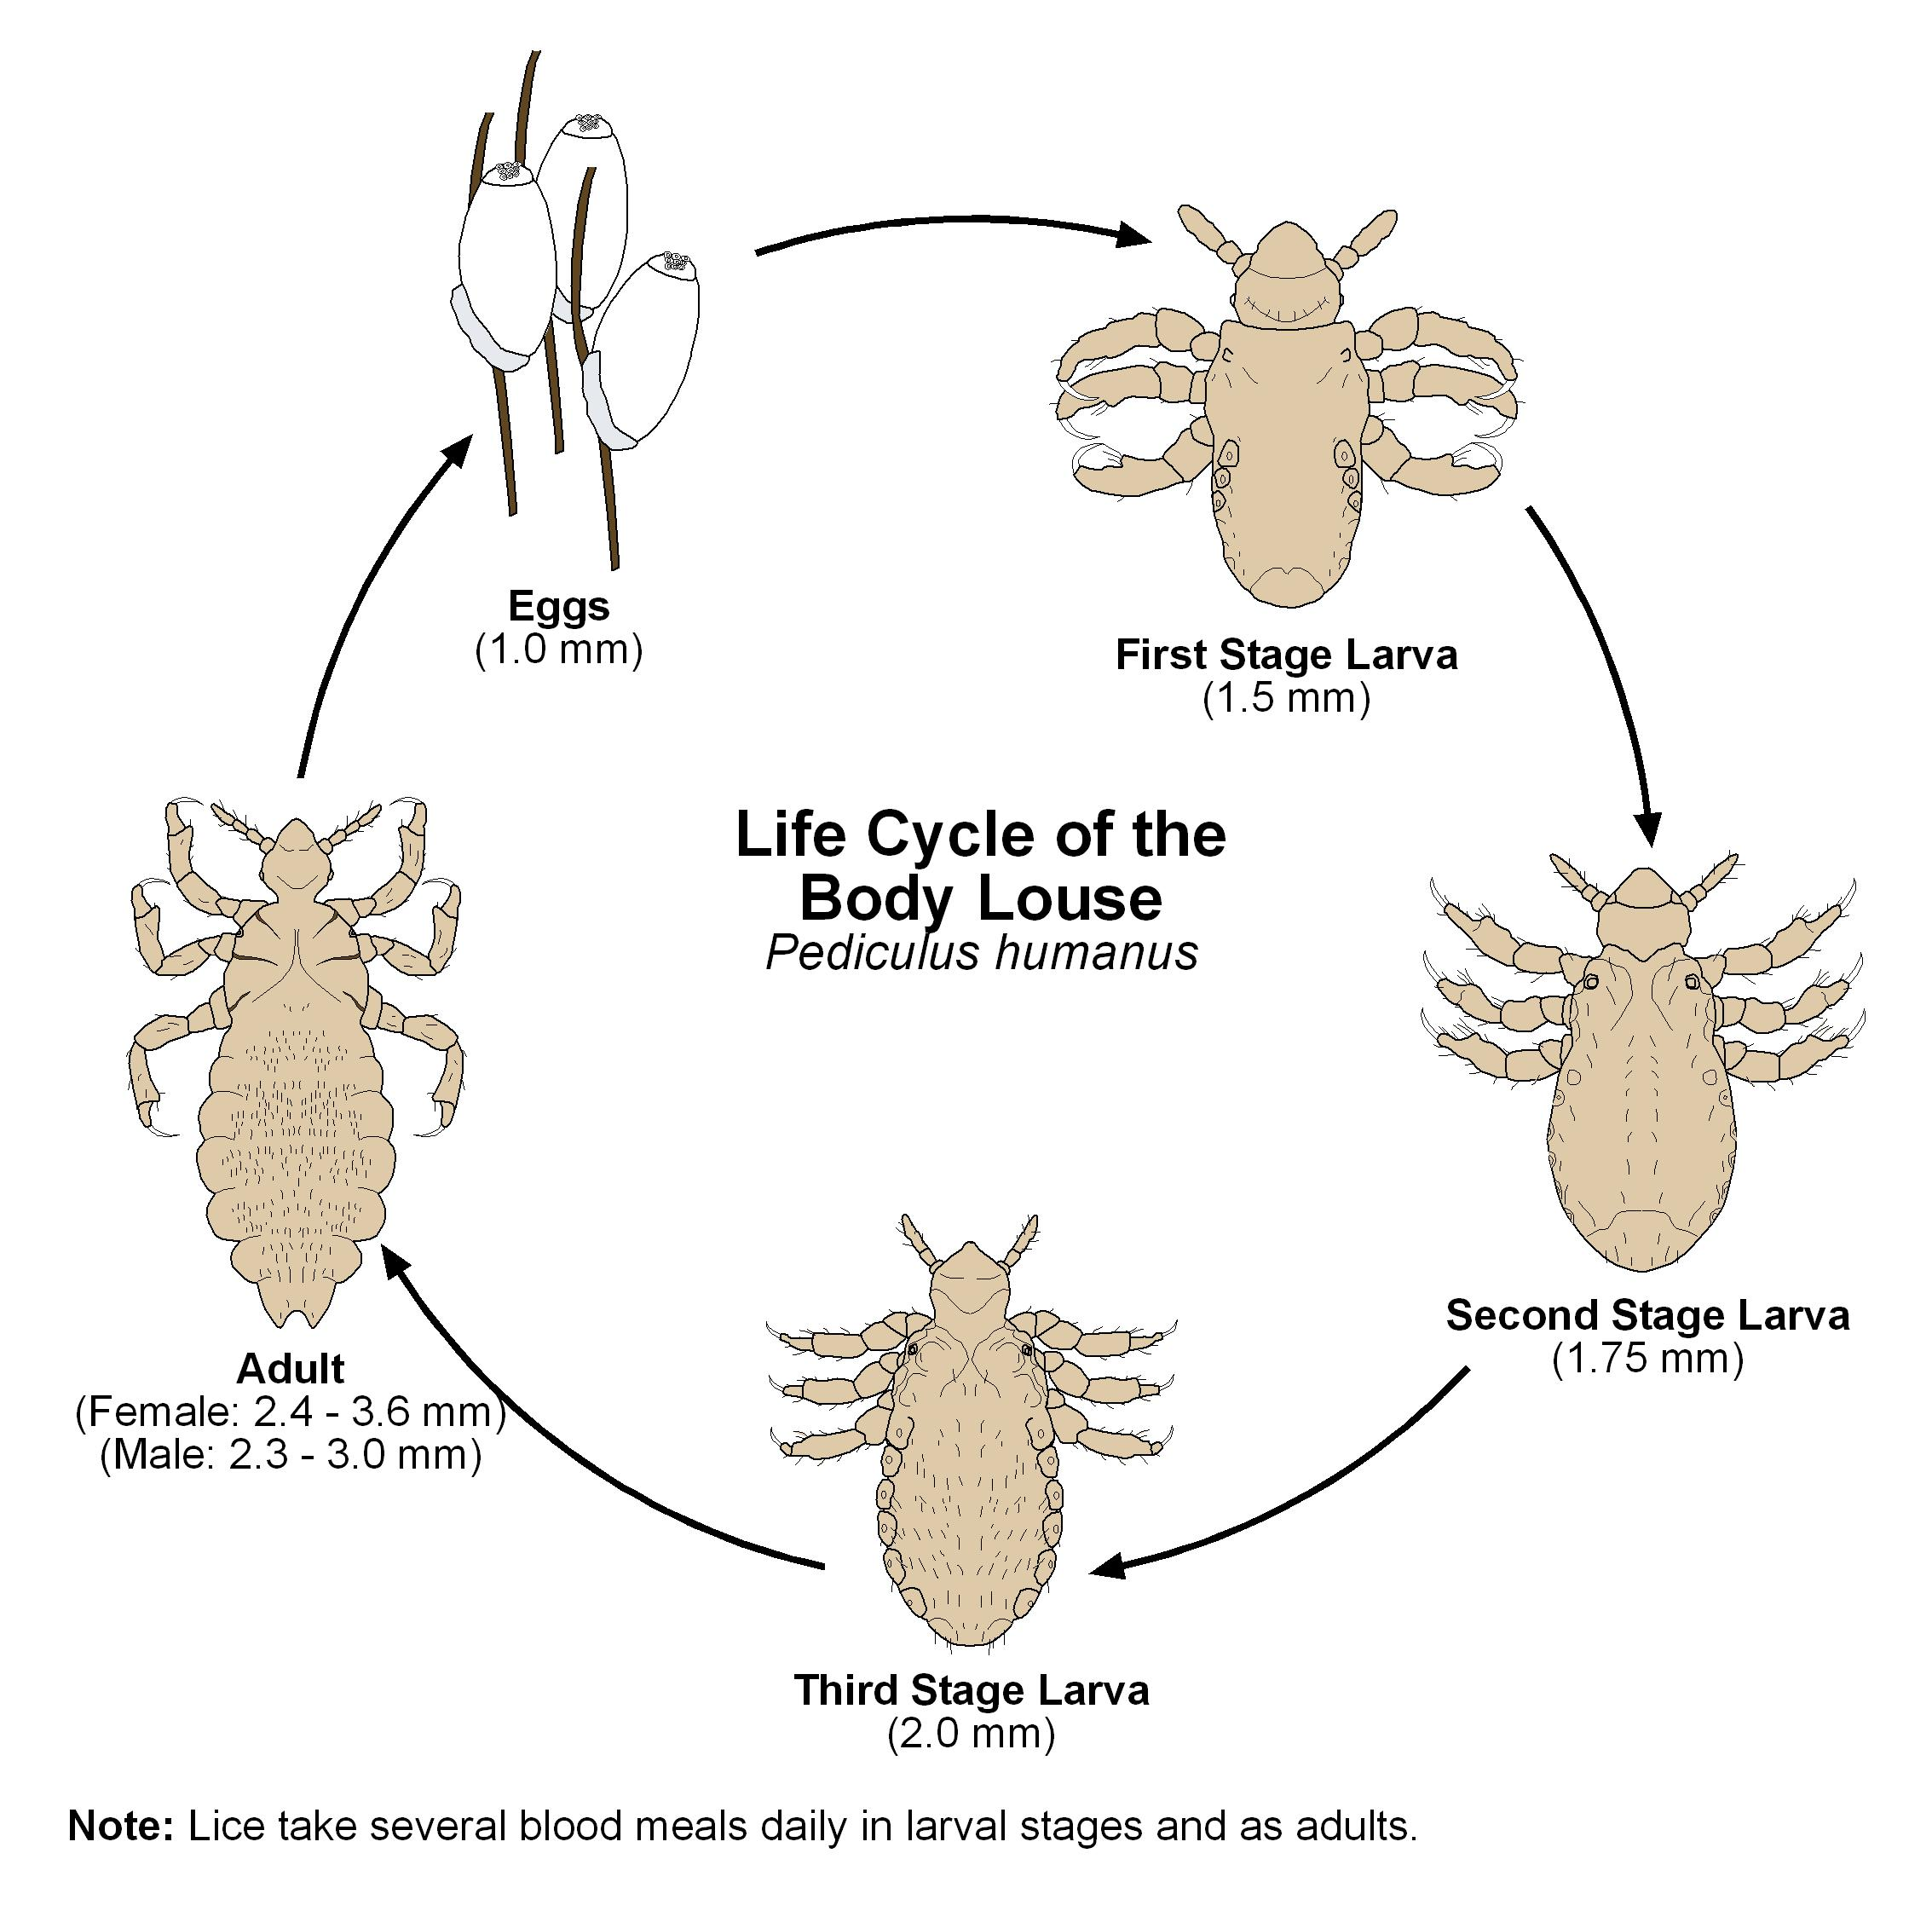 body louse life cycle